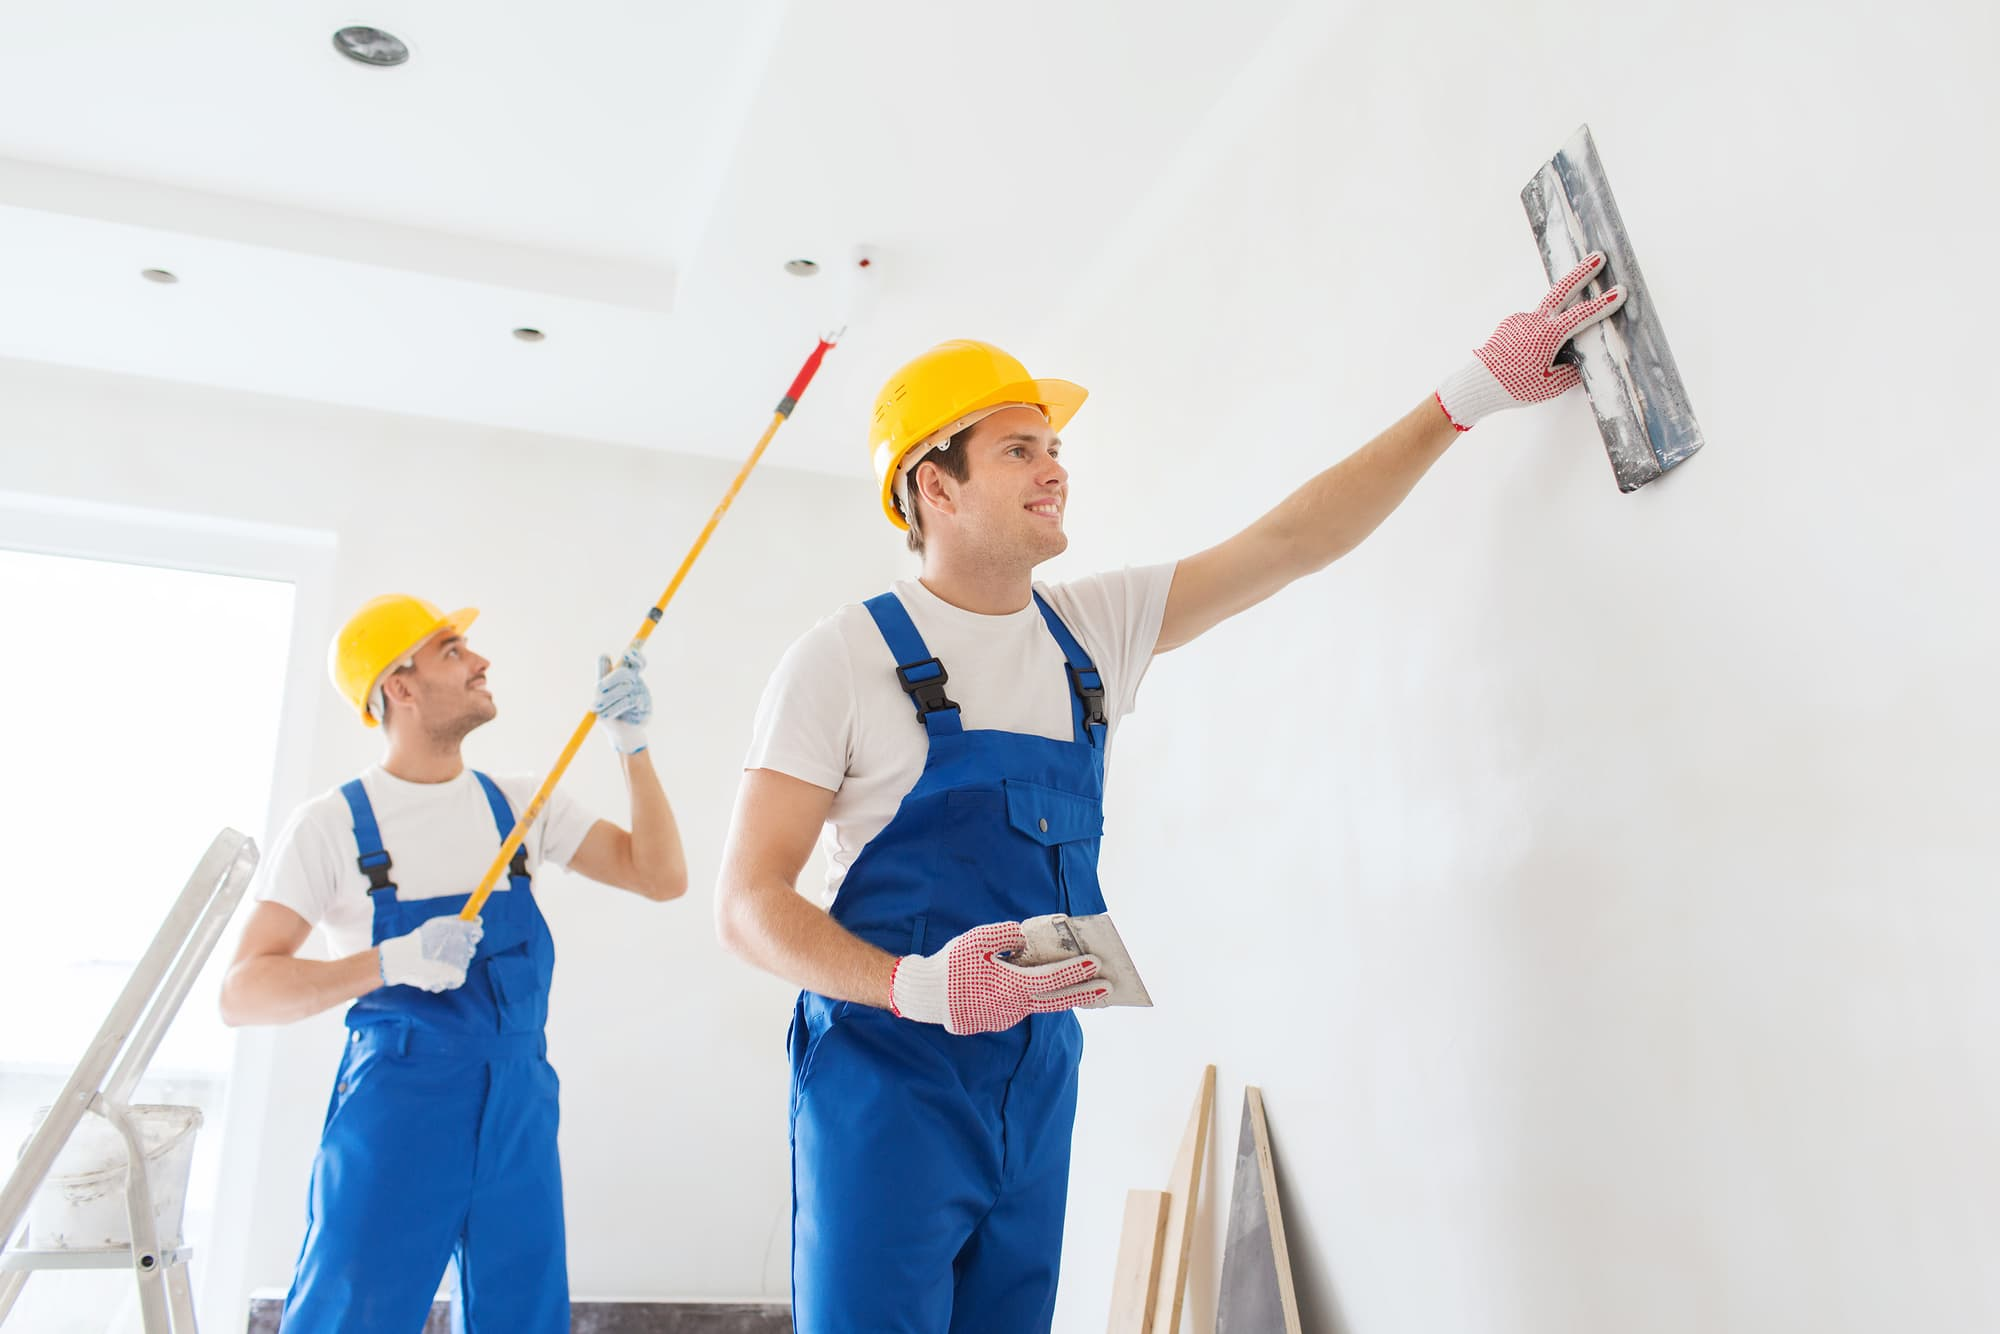 Professional Painters-College Station TX Professional Painting Contractors-We offer Residential & Commercial Painting, Interior Painting, Exterior Painting, Primer Painting, Industrial Painting, Professional Painters, Institutional Painters, and more.